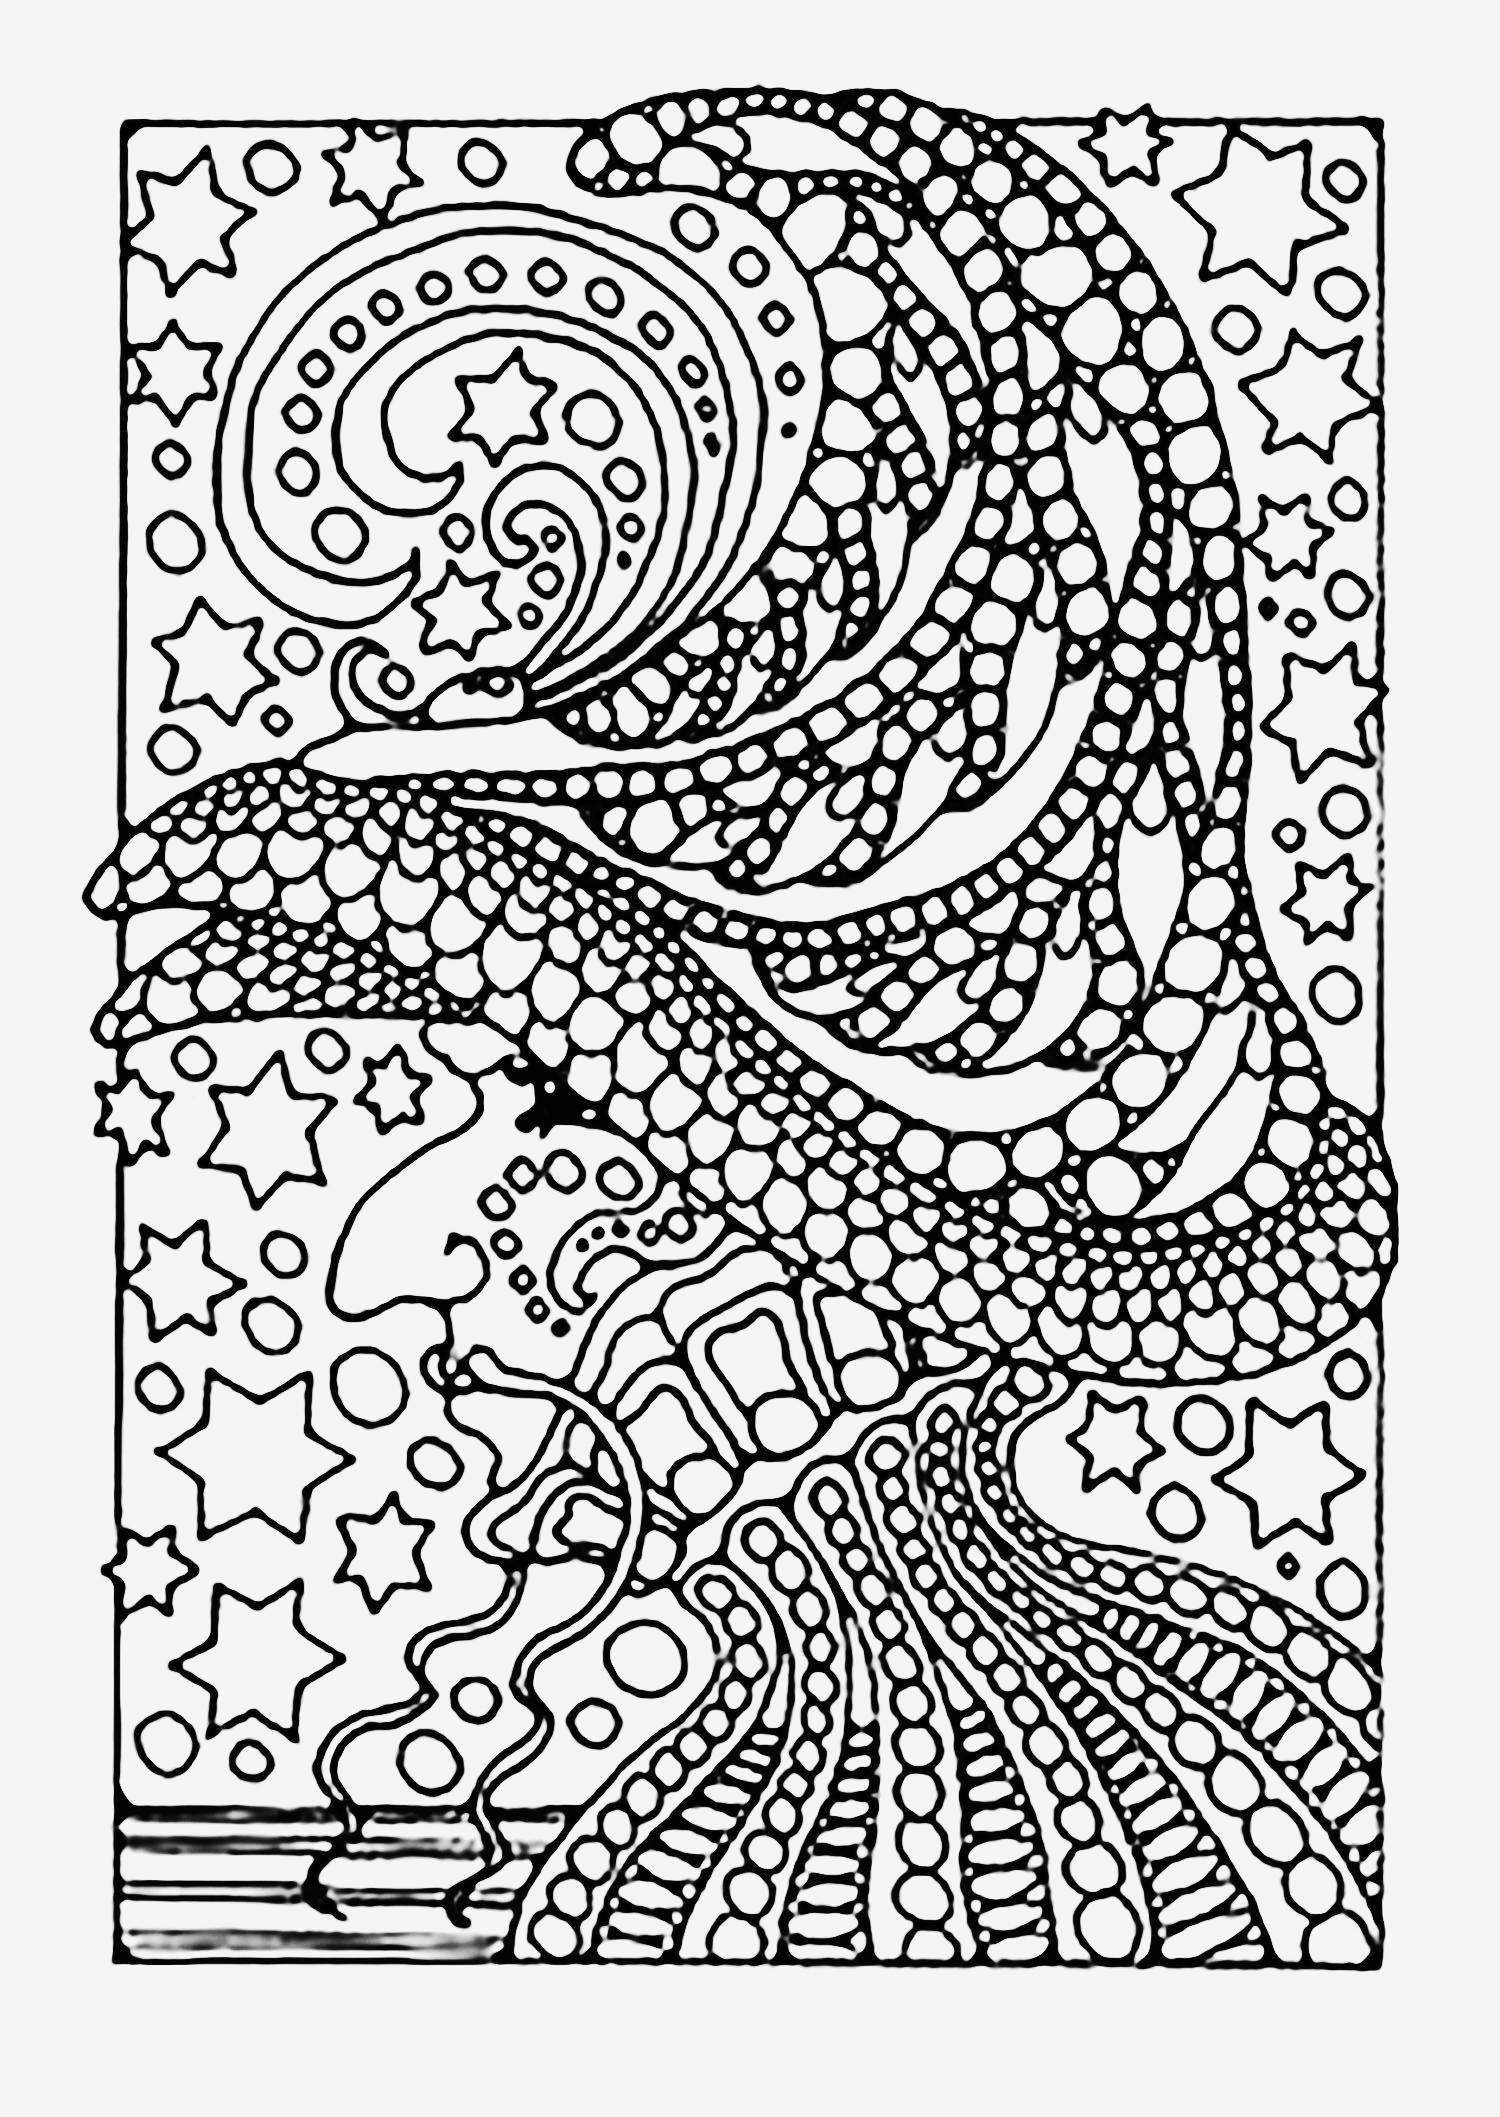 pen coloring pages Download-Flame Coloring Page Free Printable Coloring Pags Best Everything Pages Lovely Page 0d Free Image 20-b